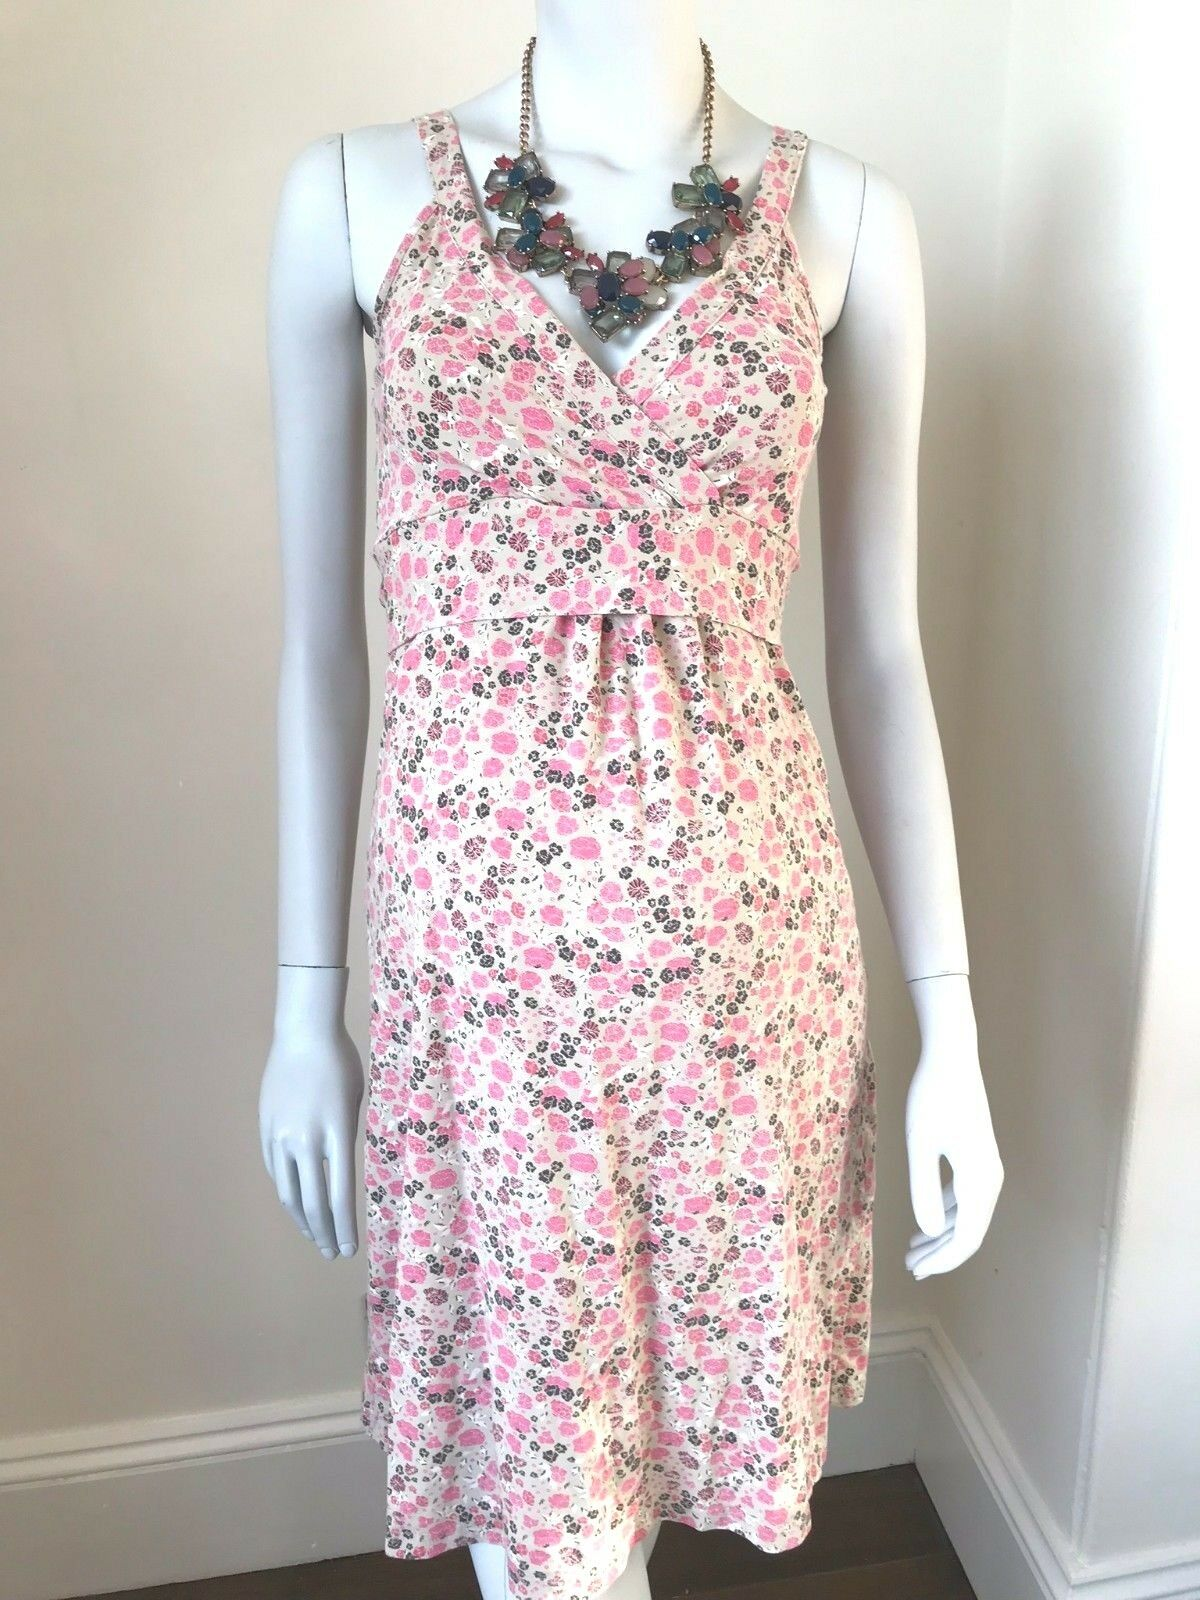 BOOB DESIGN MATERNITY Dress, Strappy Pink Floral  10 (Size XS)